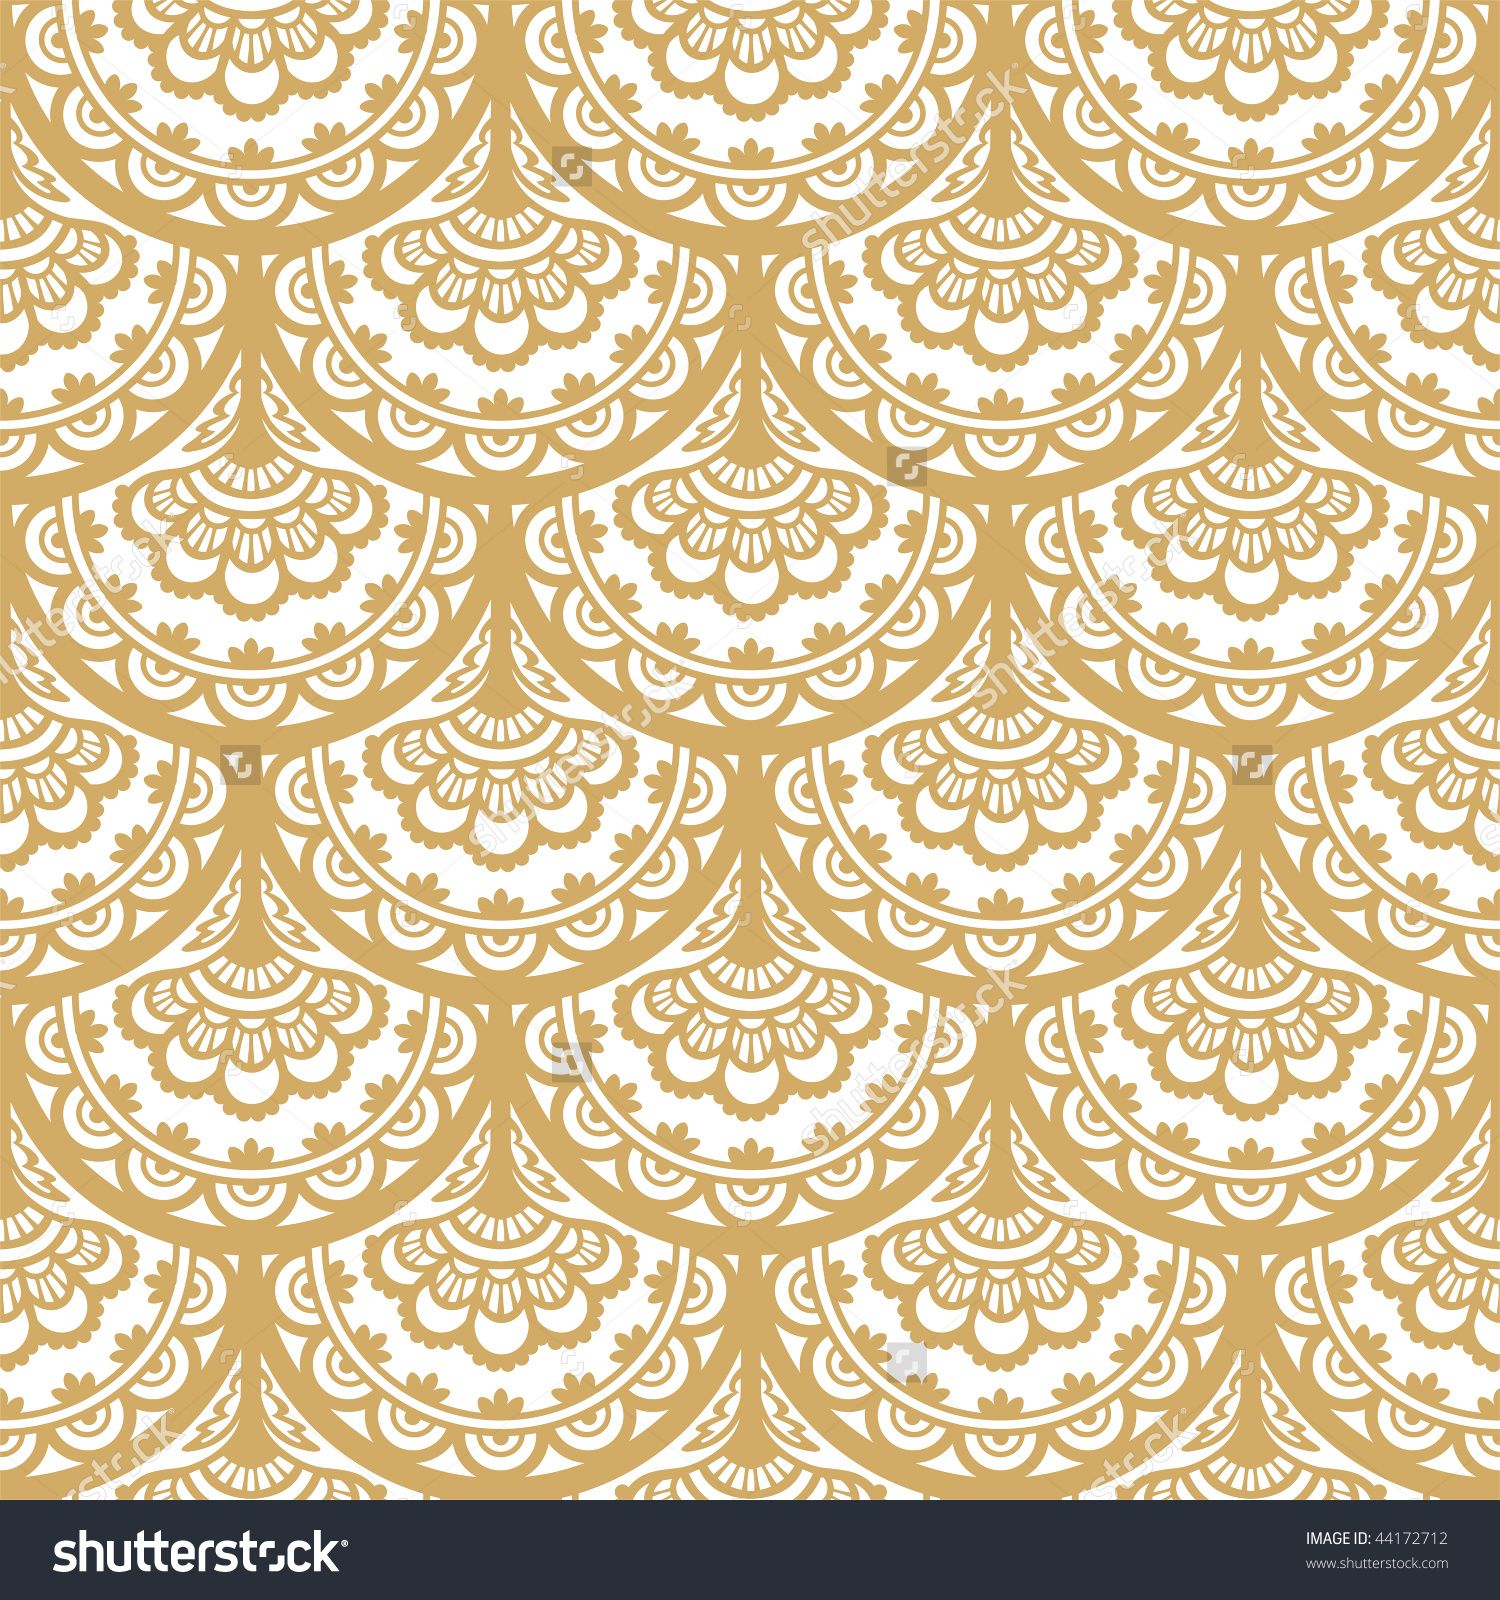 Seamless Damask Pattern Classic Wallpaper Classic HD Wallpapers Download Free Images Wallpaper [1000image.com]